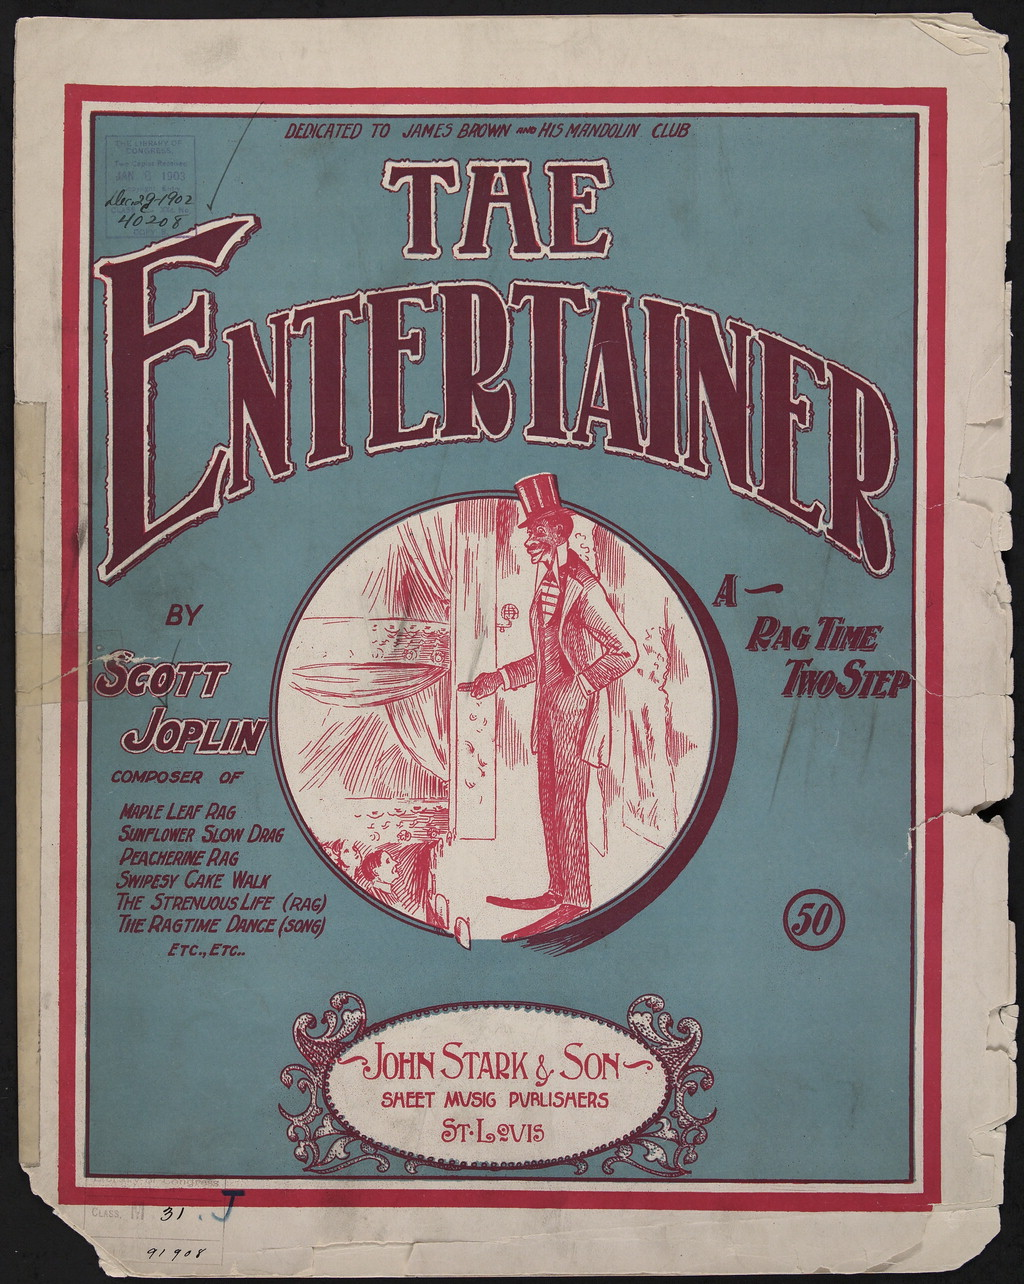 The Entertainer  Wikipedia